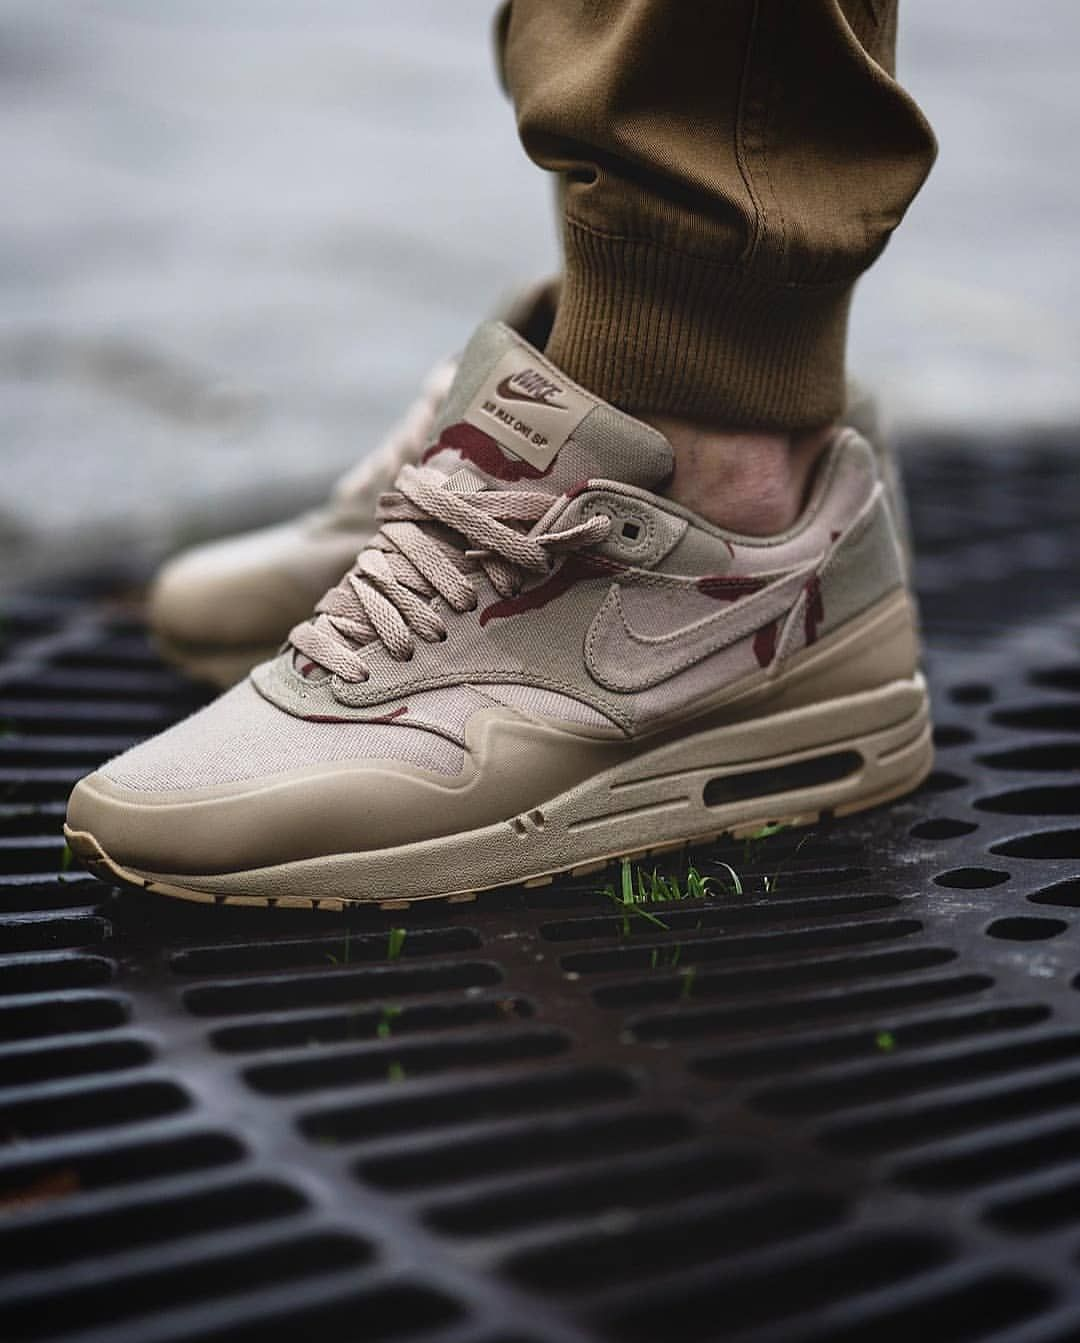 reputable site 712fa 31e3e The Nike Air Max 1 MC SP Desert Camo utilises the desert camouflage palette  used by the US military during the mid 90 s, on top of a…